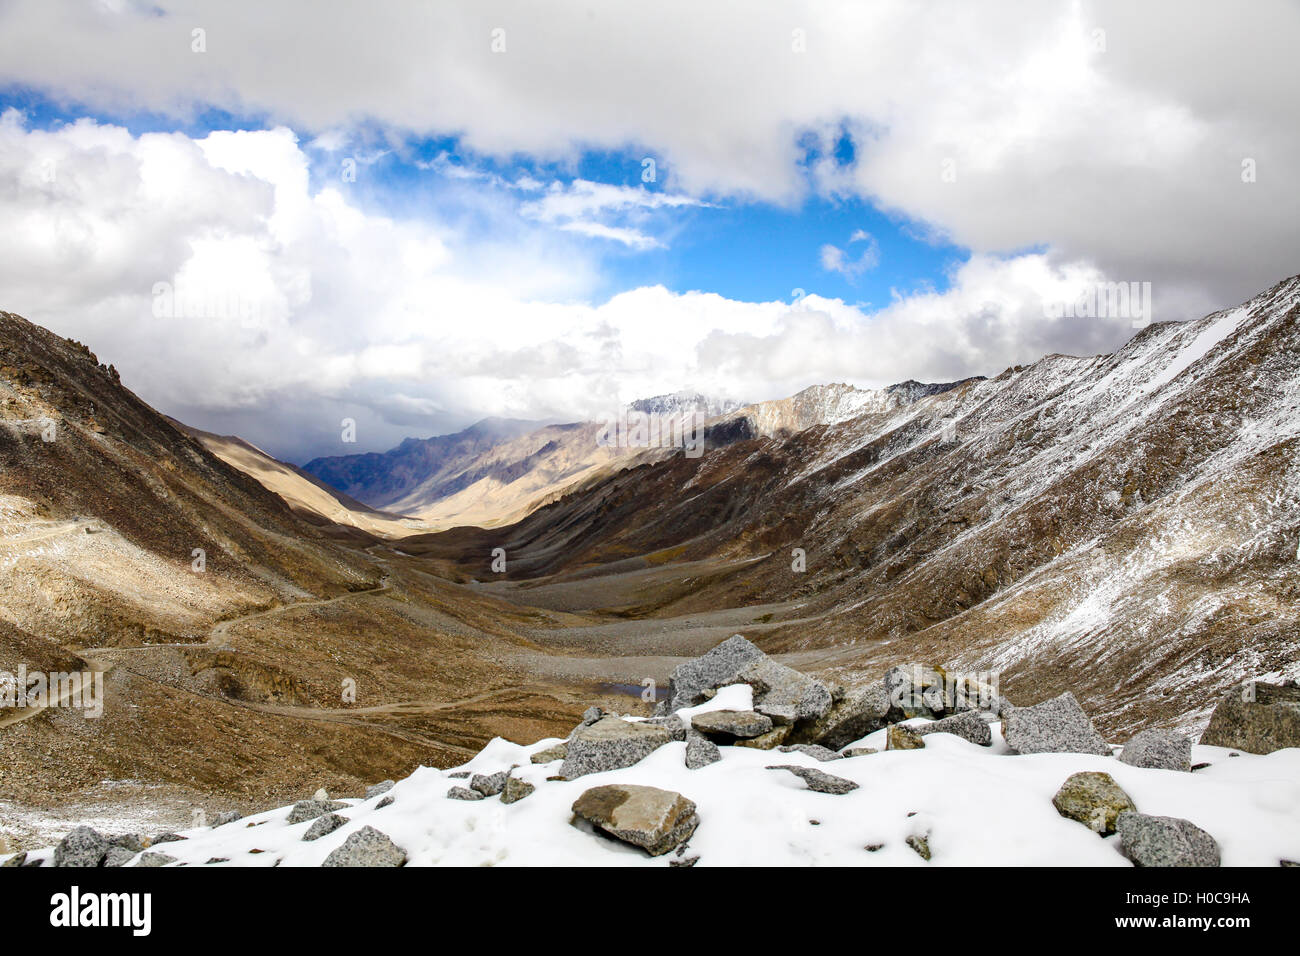 Landscape Of Snow Mountains In Leh Ladakh In Indian State Of Jammu